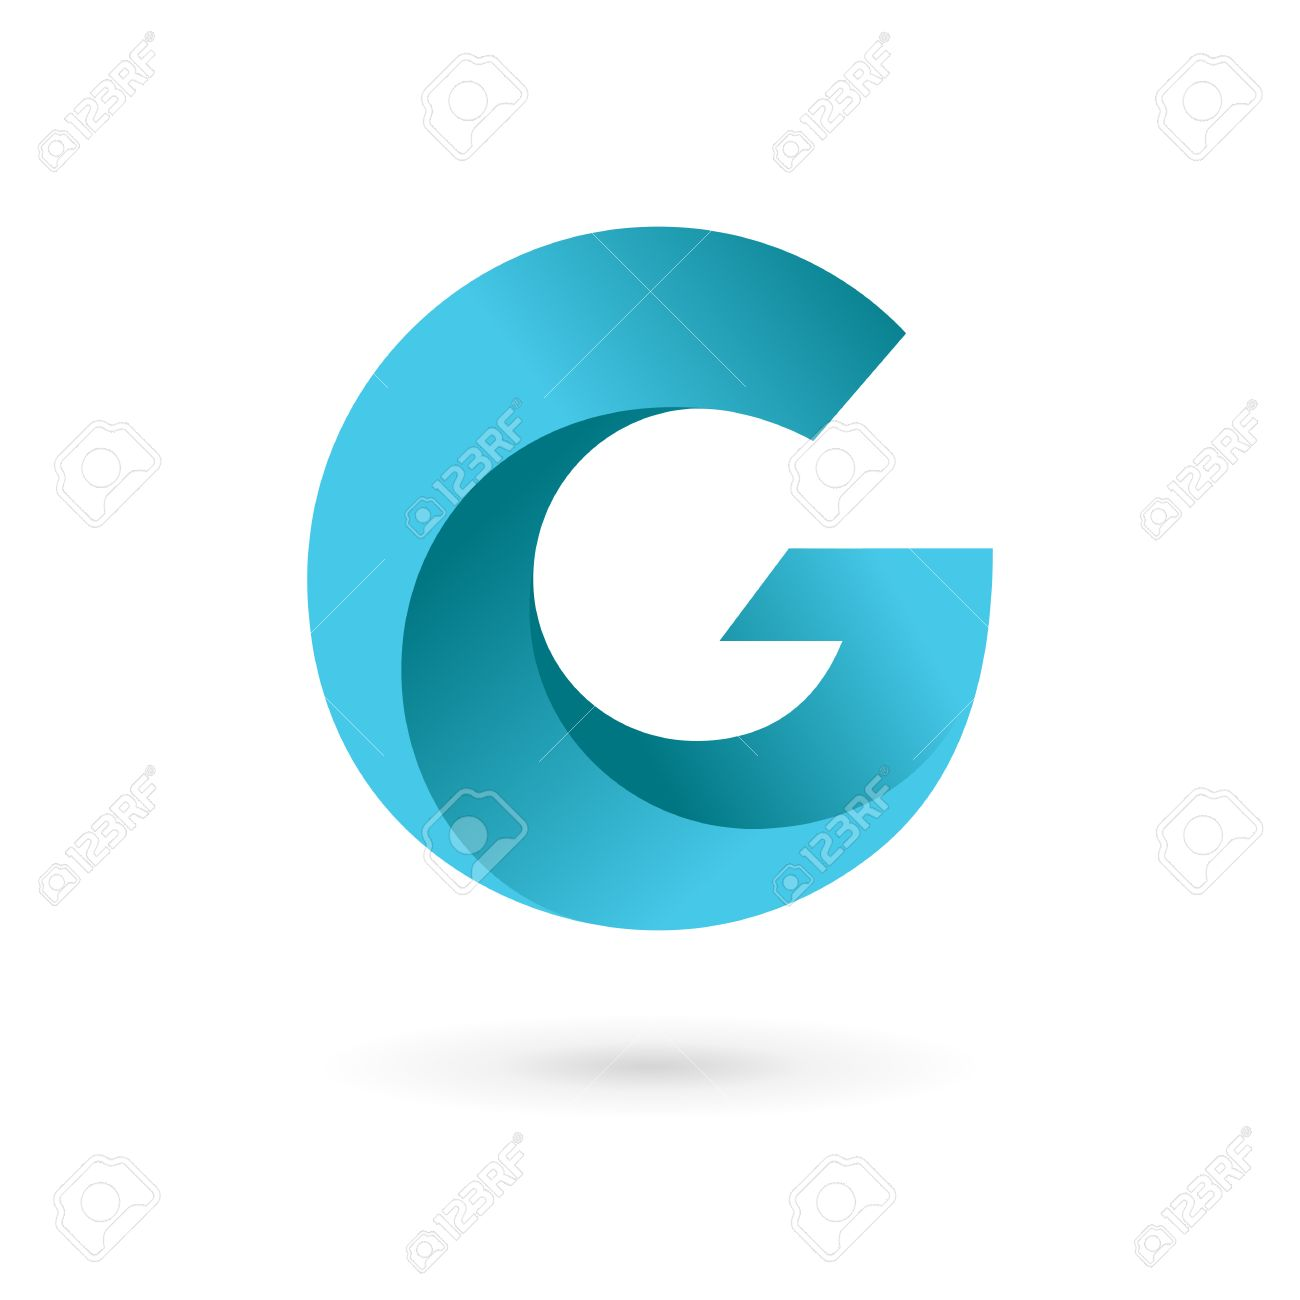 letter g logo icon design template elements vector color sign